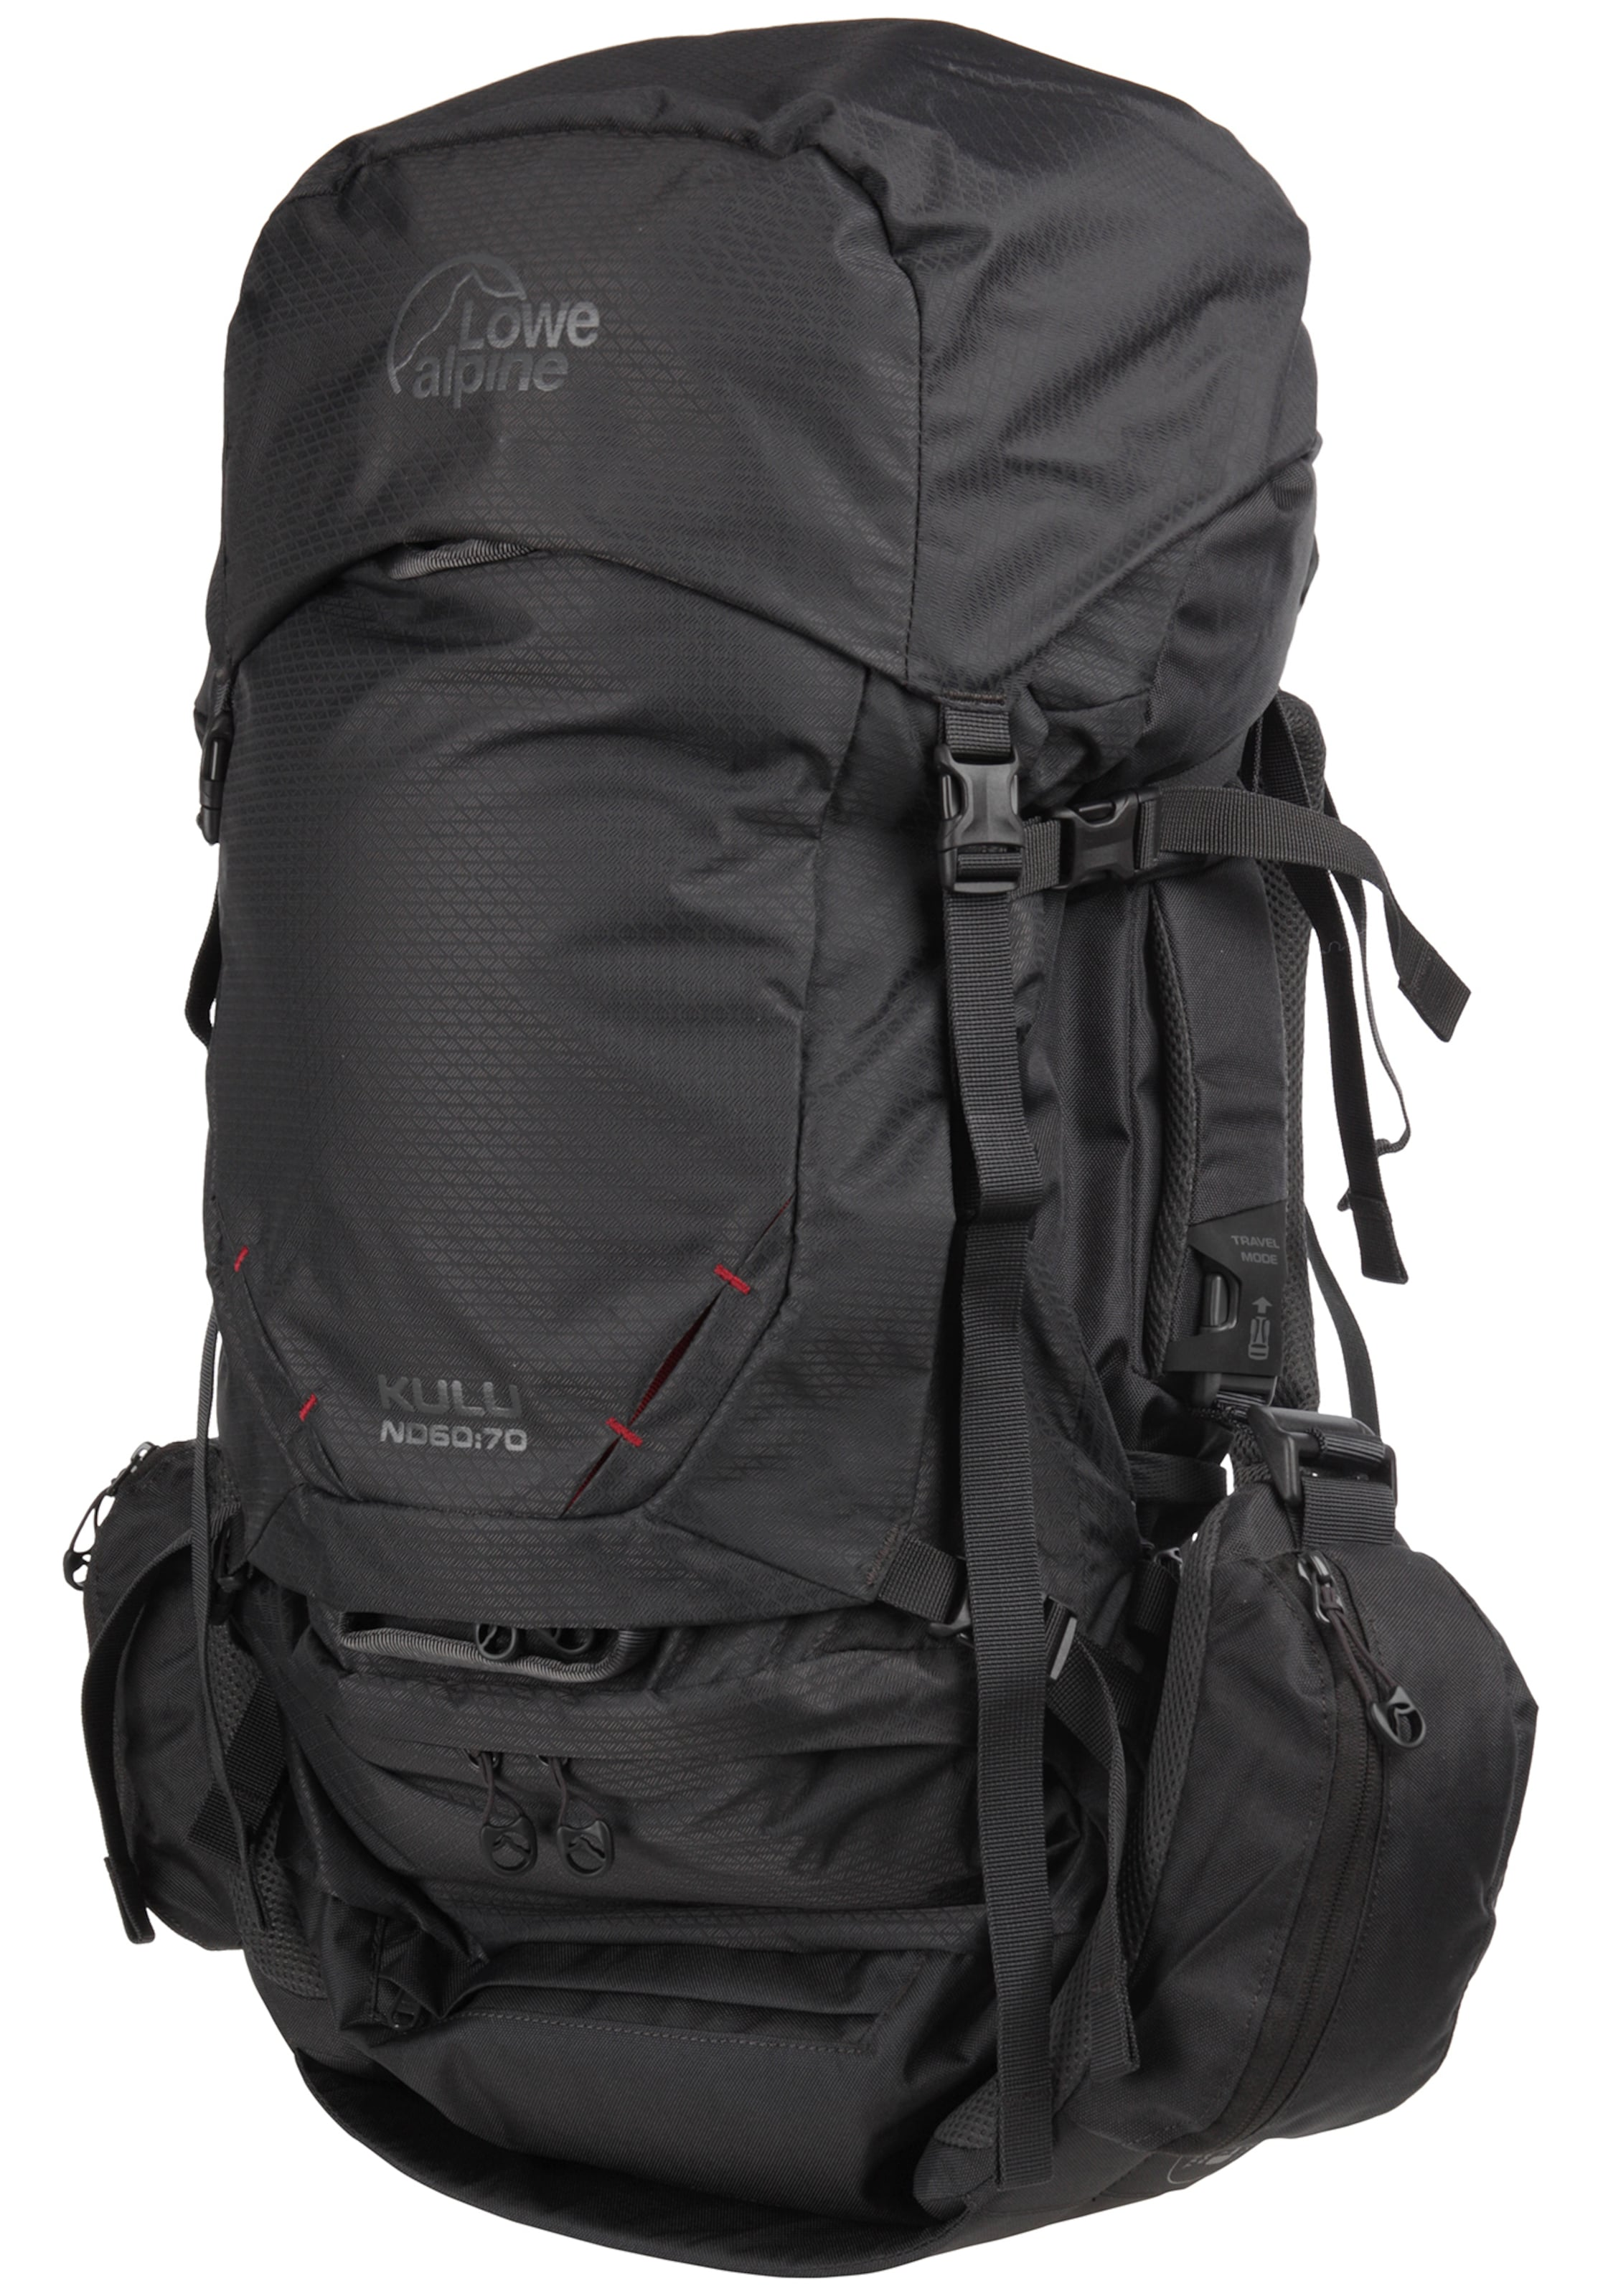 'kulu 60 Rucksack 70' Anthrazit Nd Alpine In Lowe 0kXnP8wNO